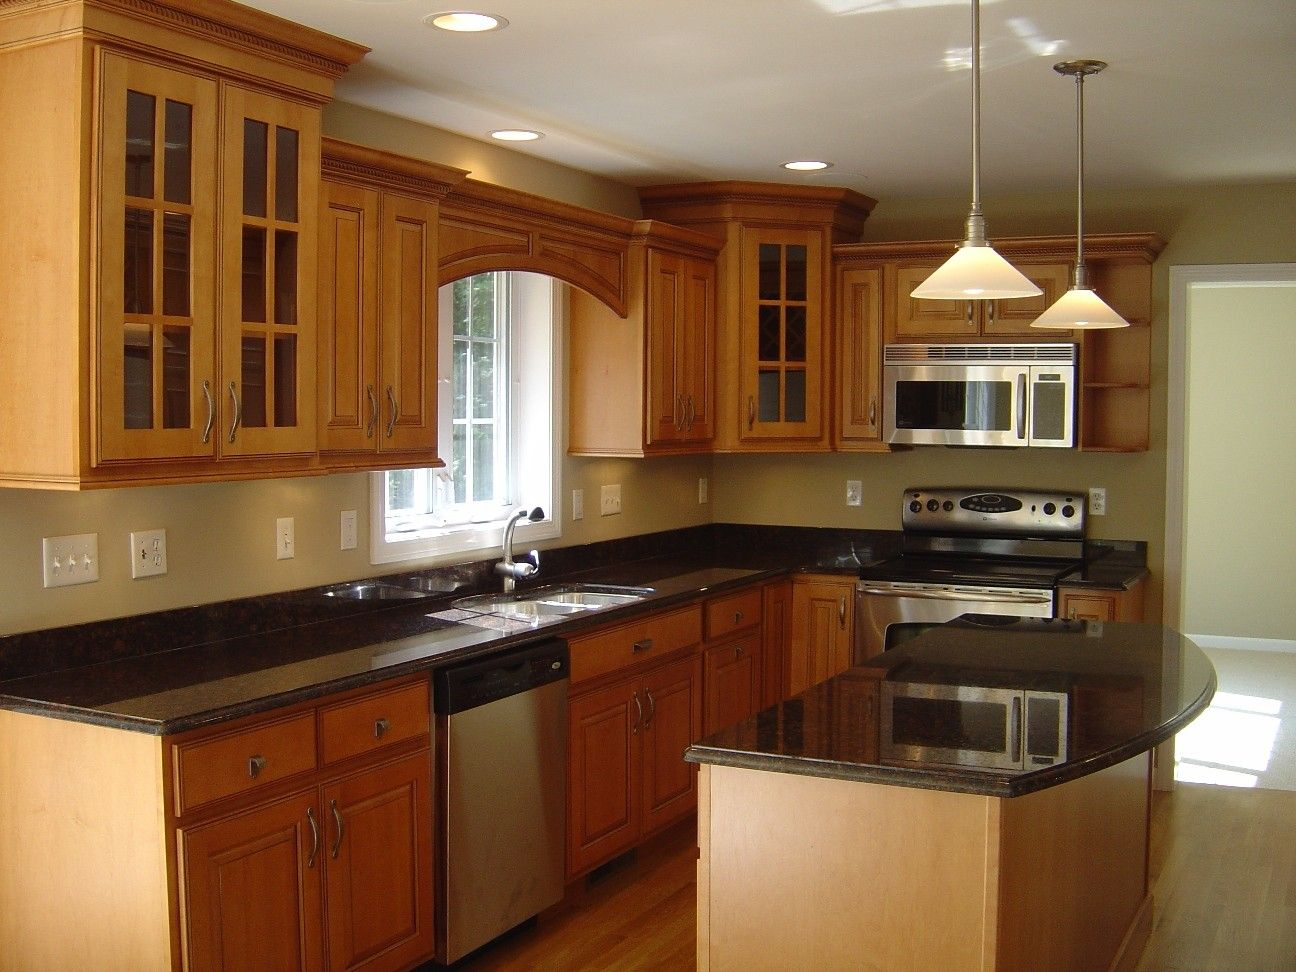 Beautiful Kitchen Hood Designs Ideas 11 Fb Unique Old Fashioned Interior For Design Home